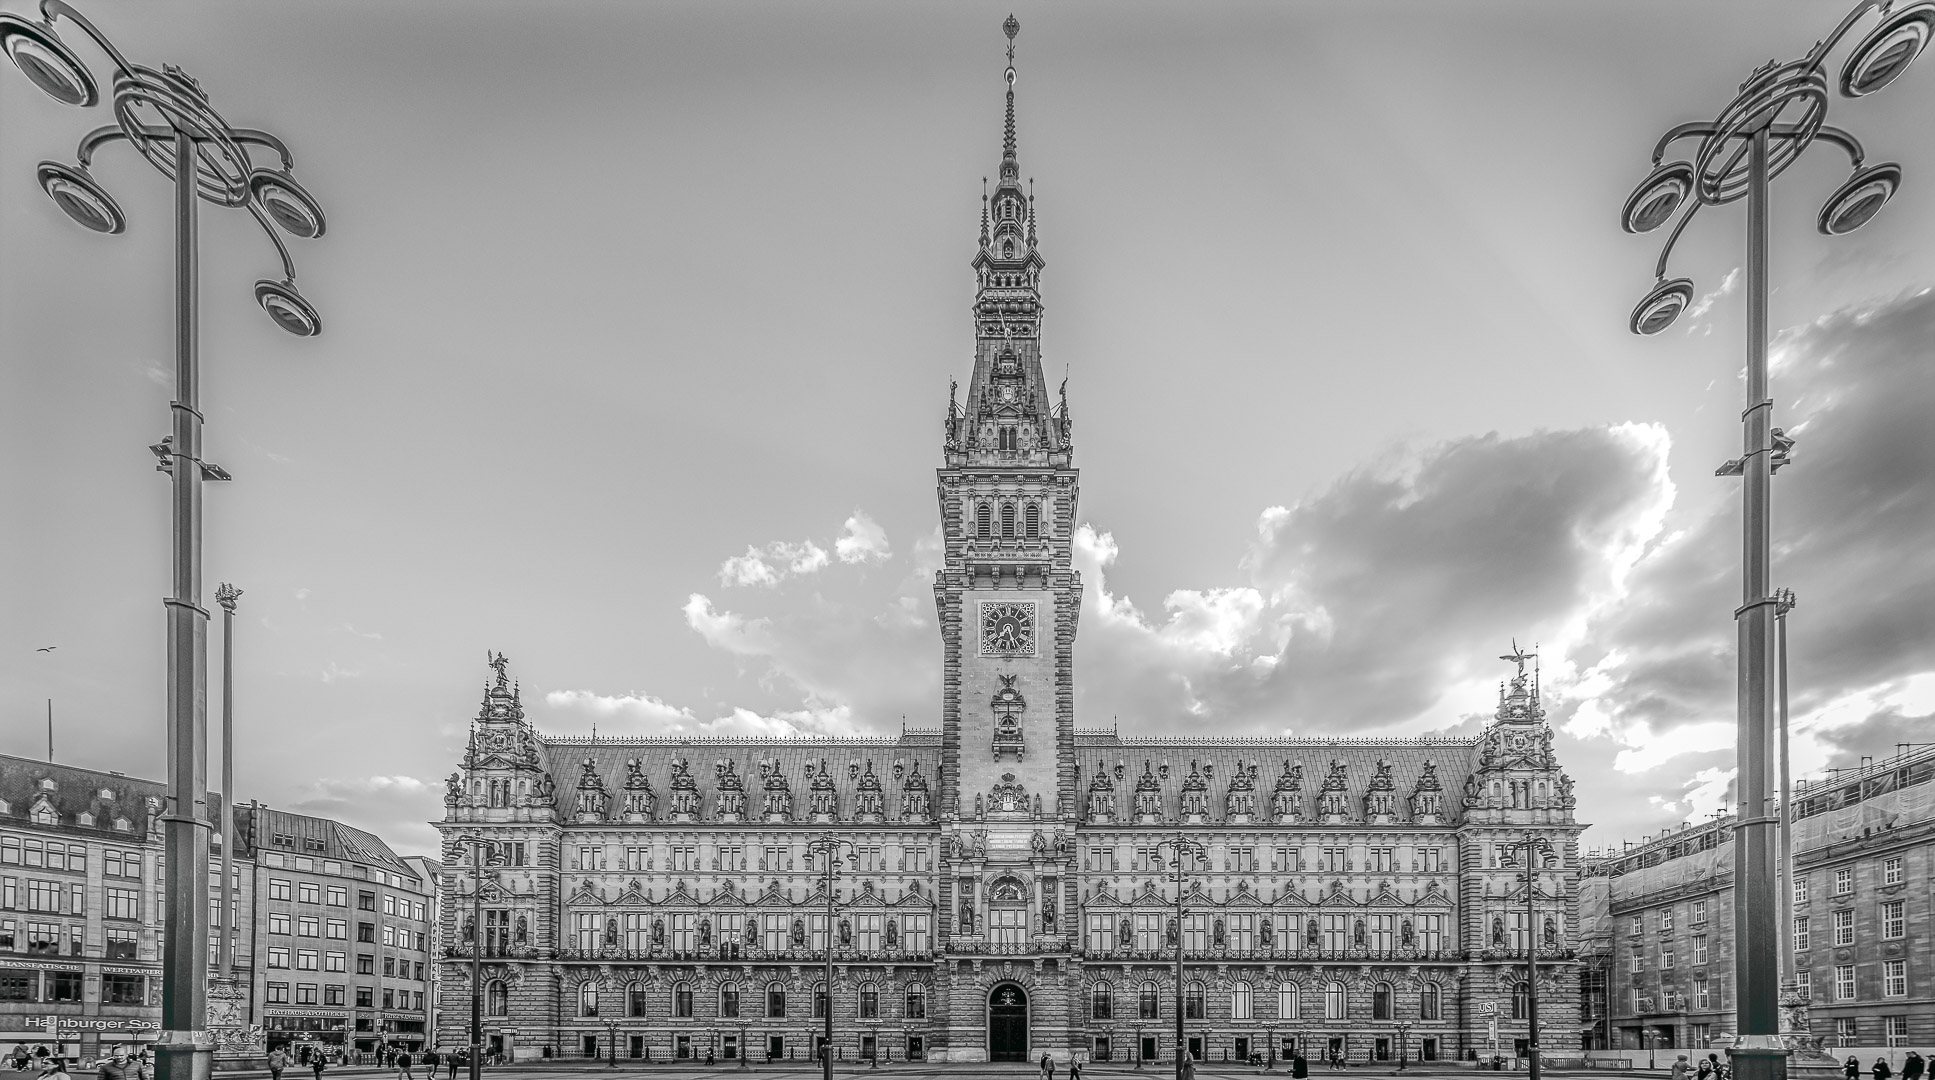 Hamburg Rathaus / City Hall